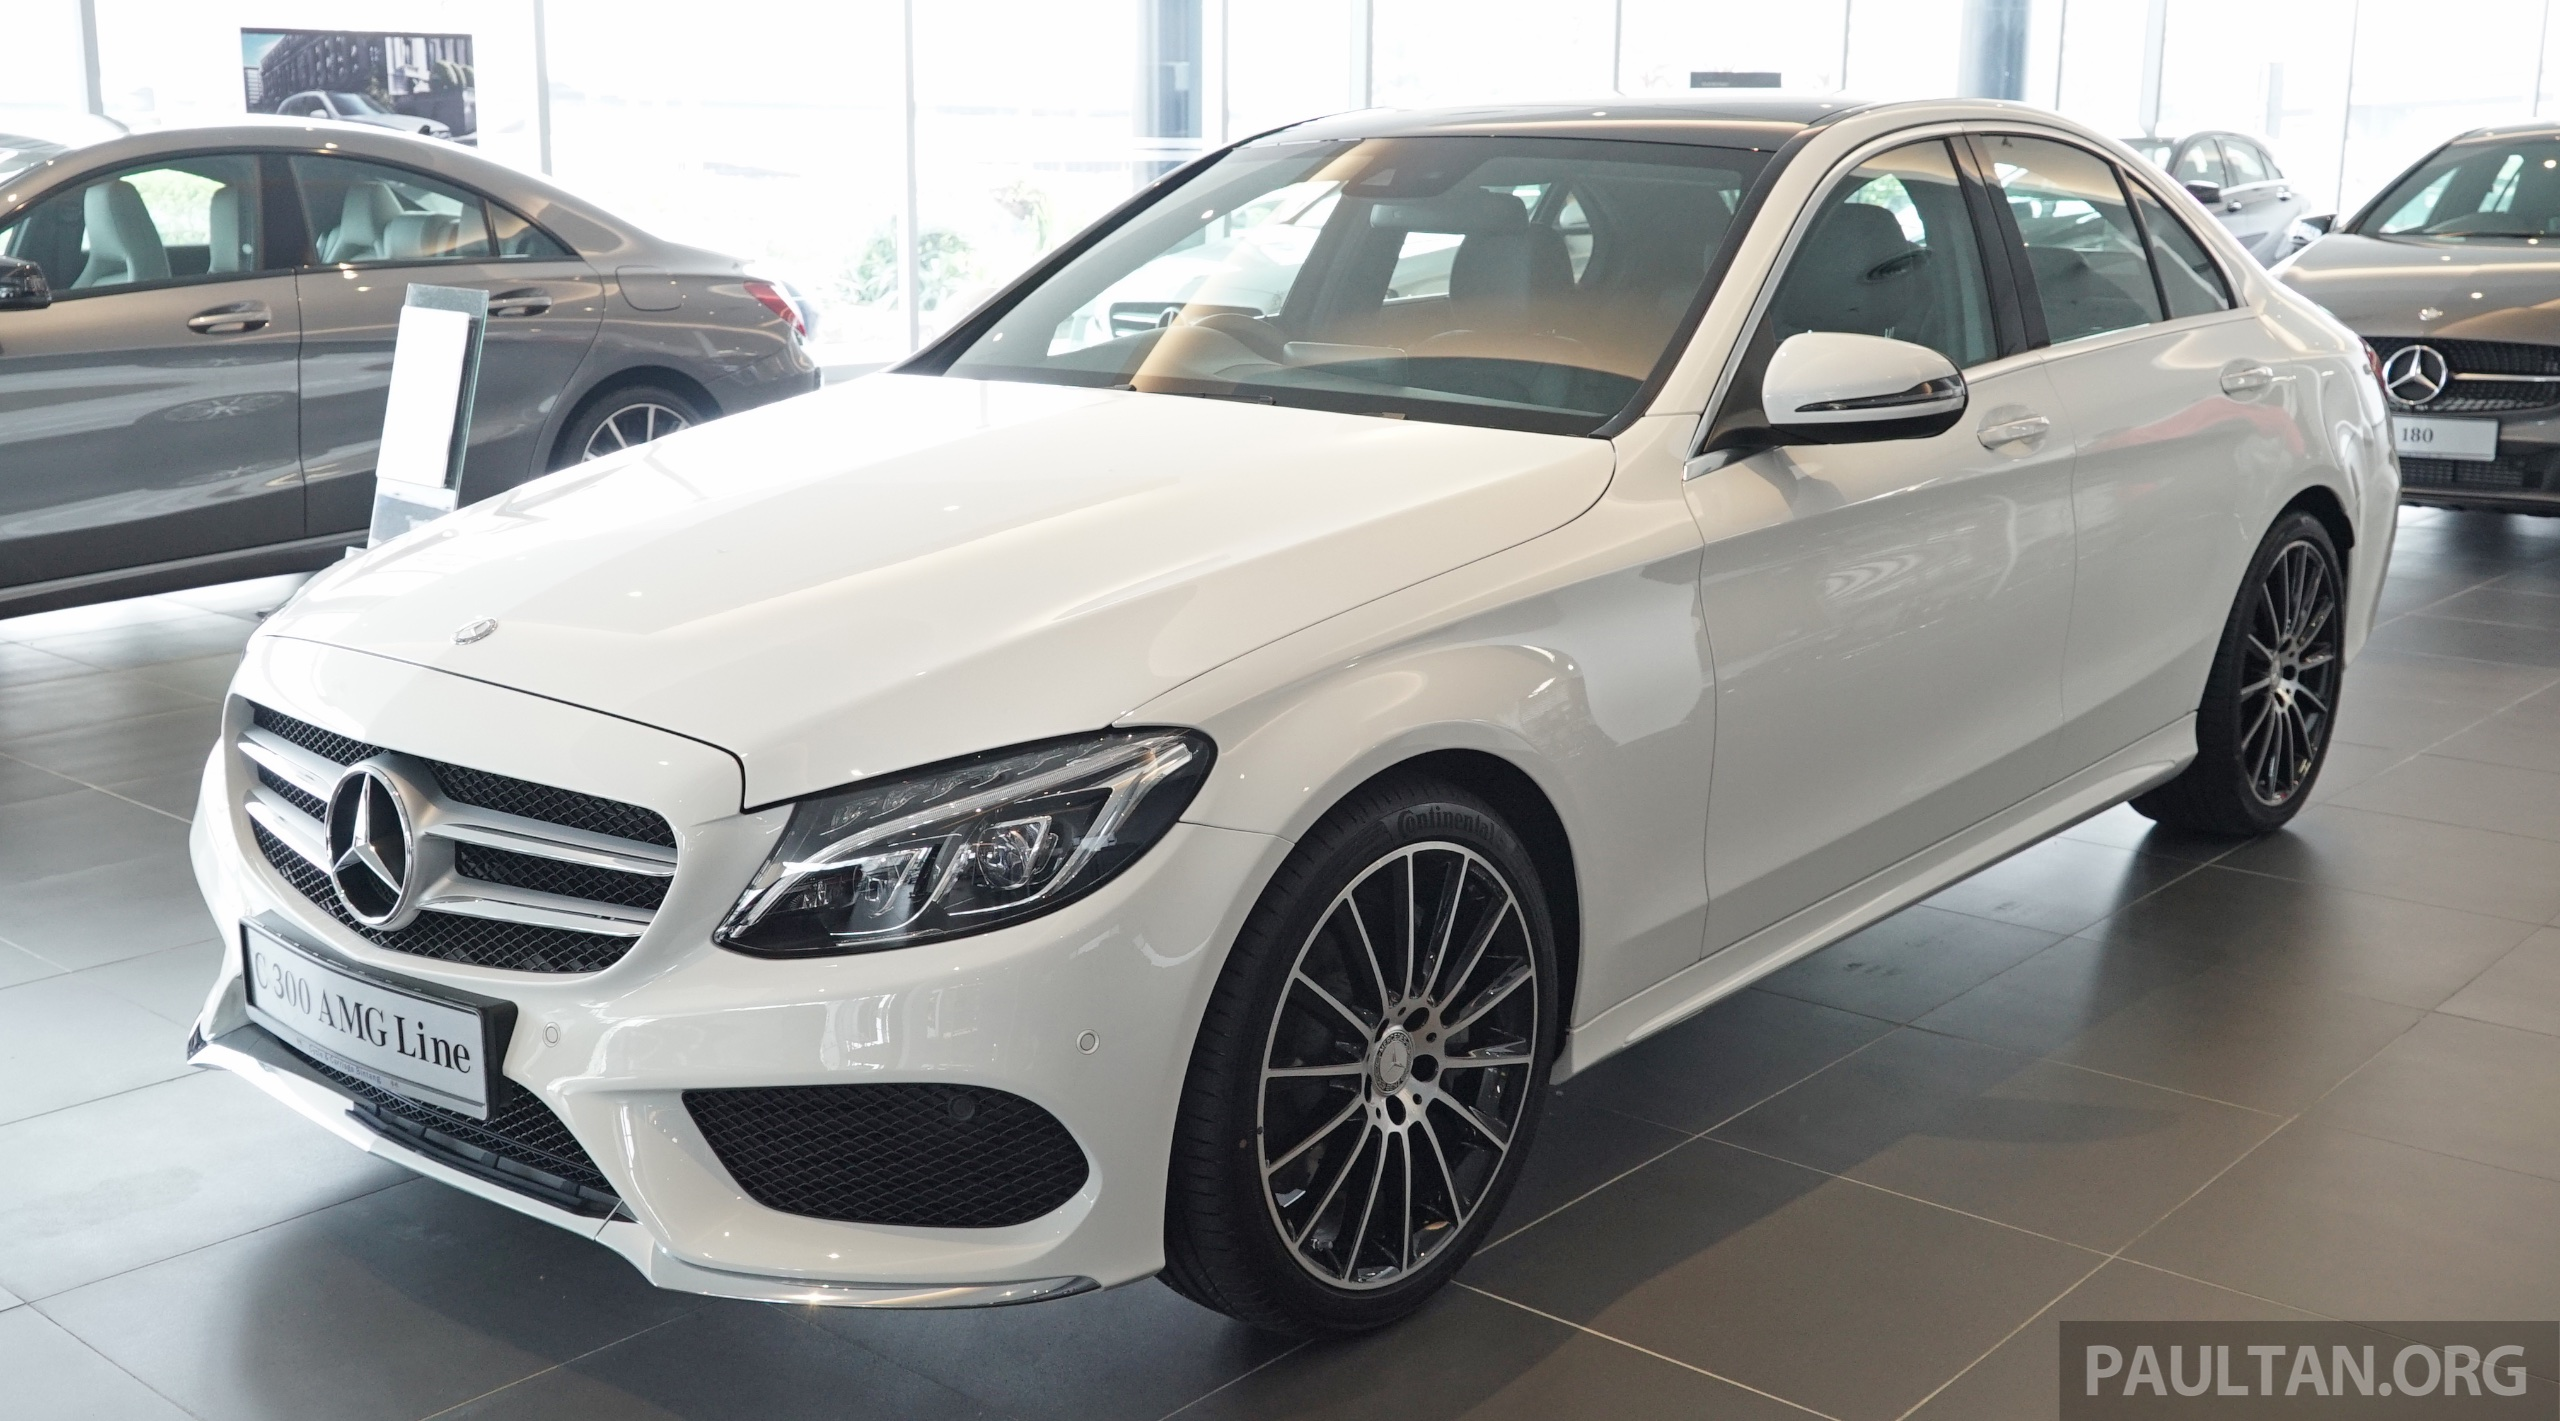 Mercedes Benz Amg >> GALLERY: W205 Mercedes-Benz C180 Avantgarde and C300 AMG Line in Malaysian showroom, from RM229k ...